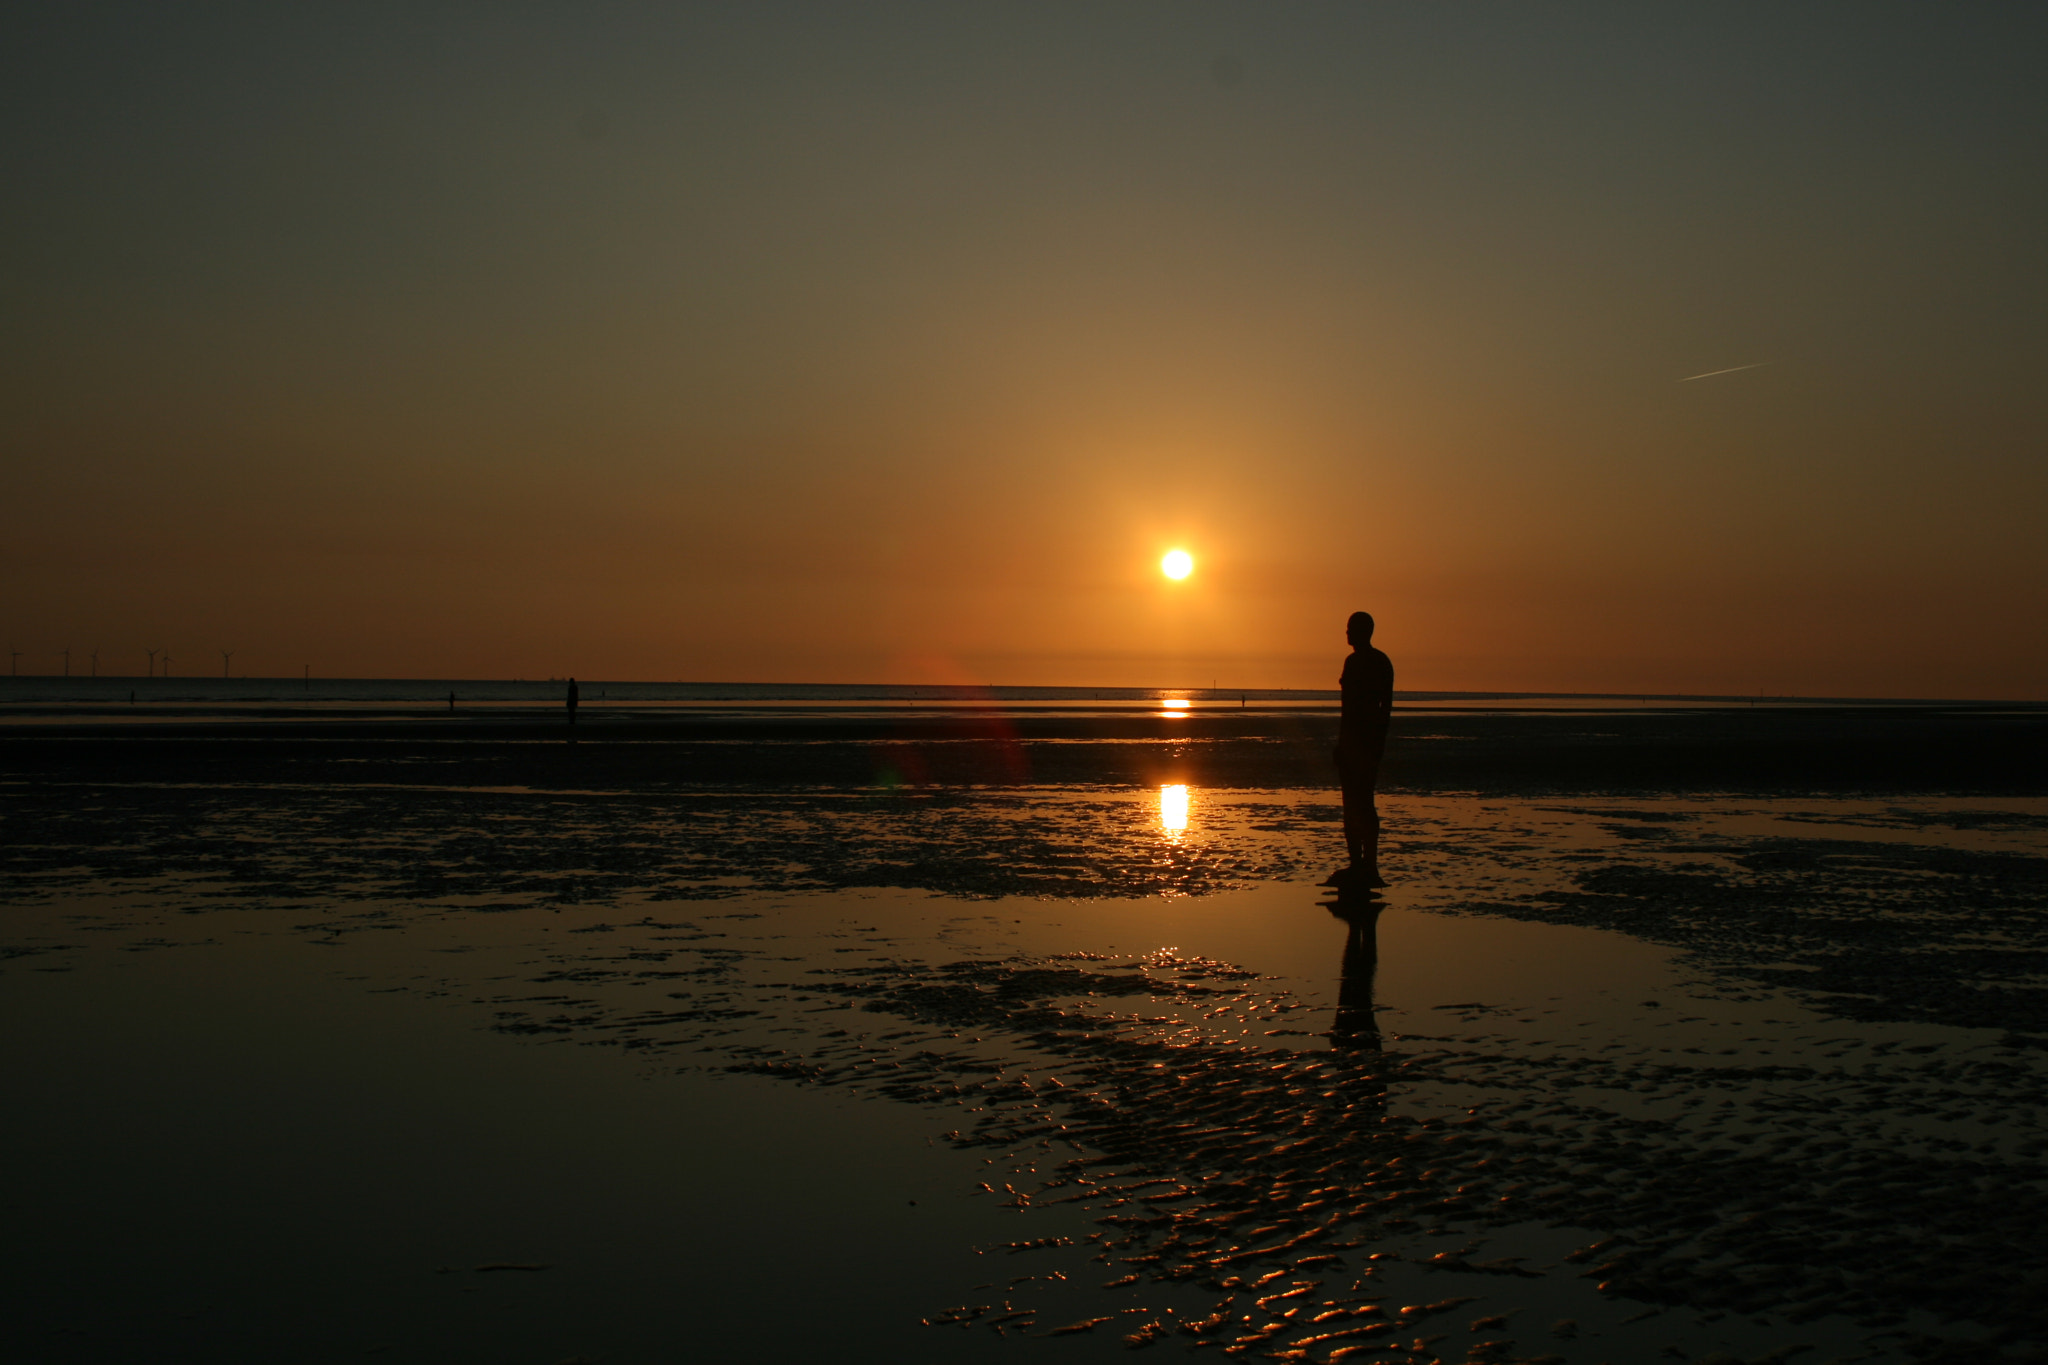 Photograph Solitary sunset by yvonne miller on 500px